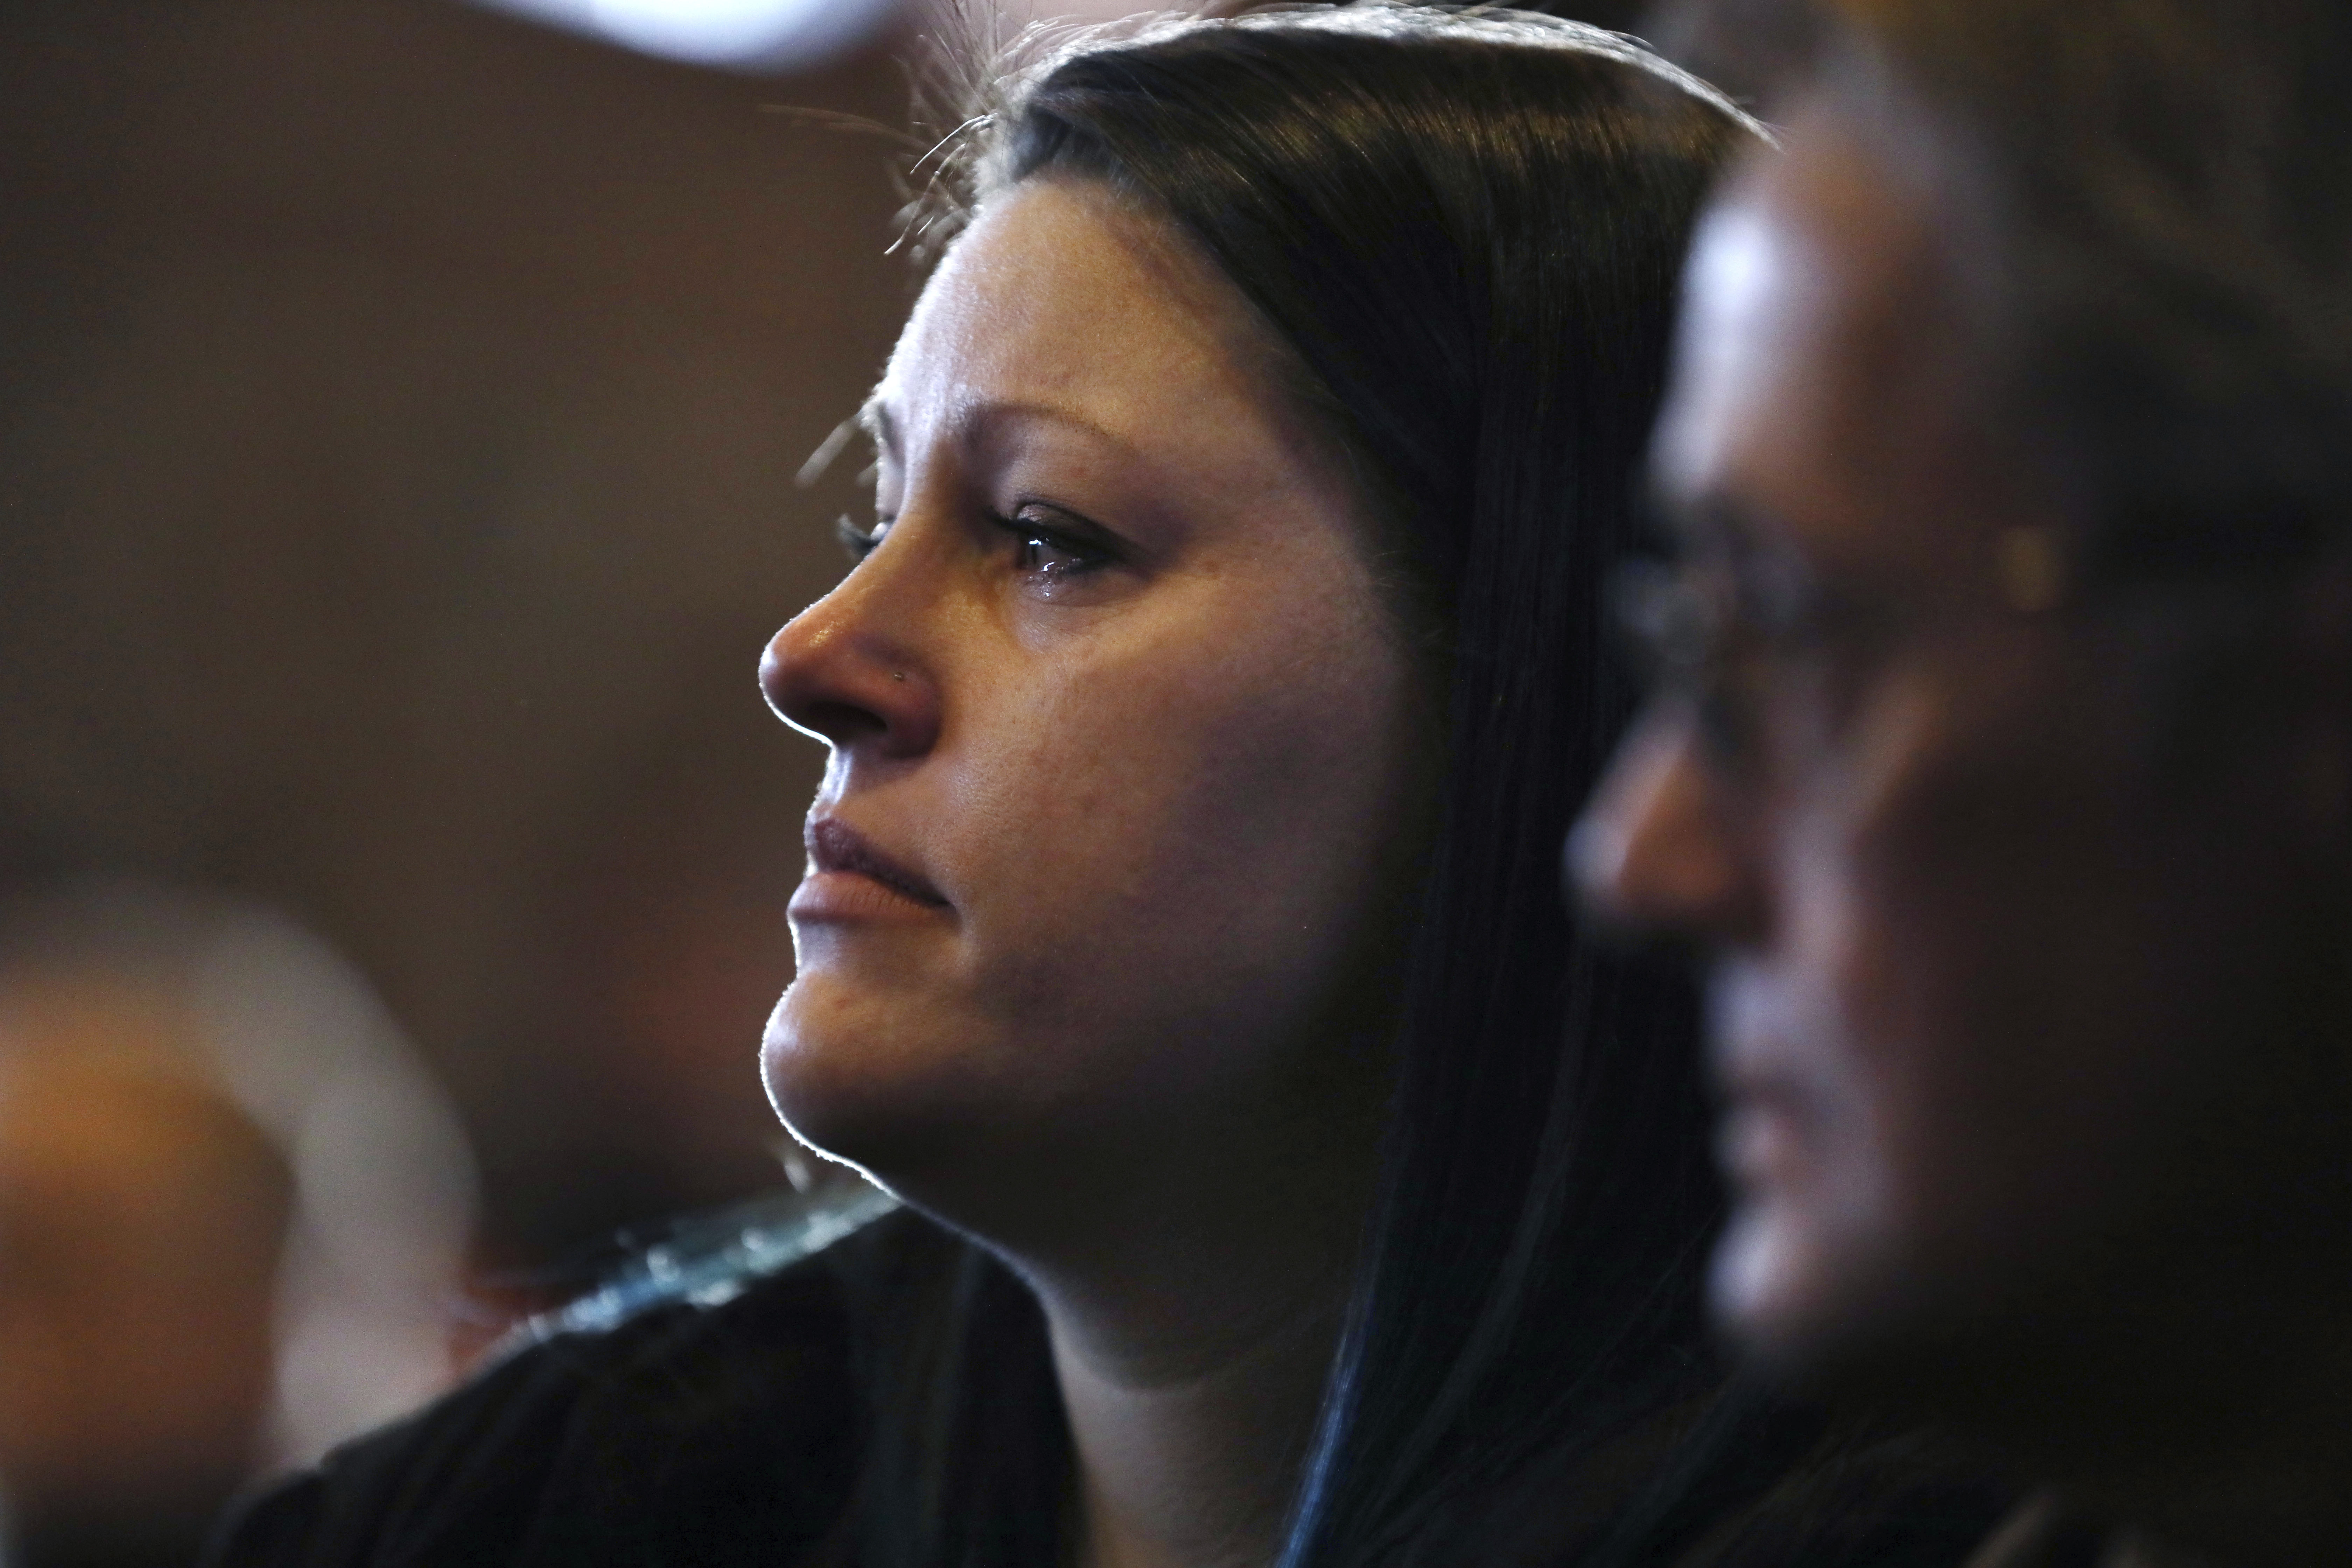 Tears fall down the face of Meagan Knudson during the funeral service for WWII Marine veteran Cpl. Remigio